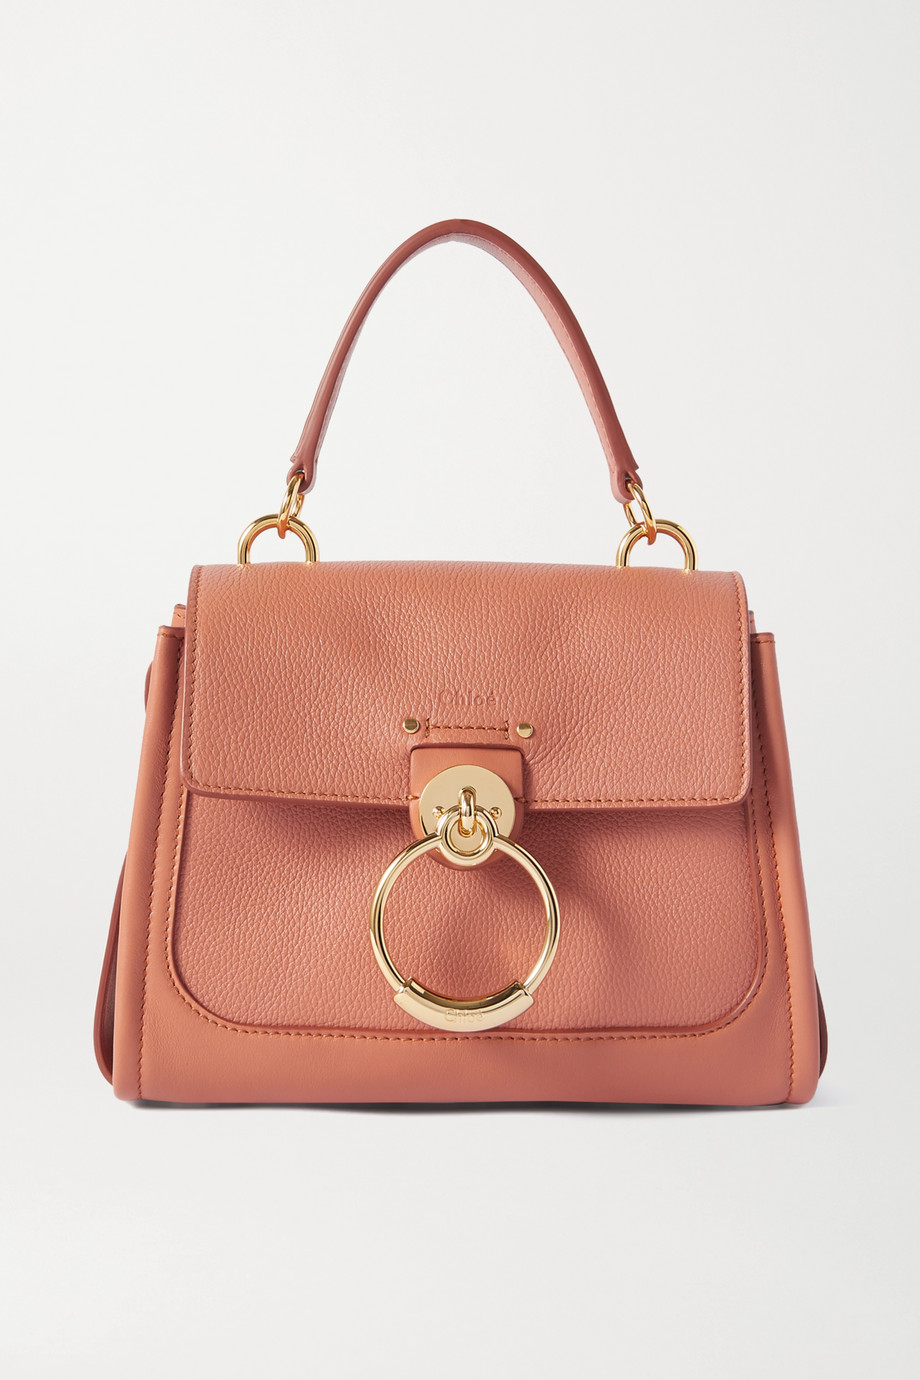 Chloé Tess Day mini textured and smooth leather shoulder bag